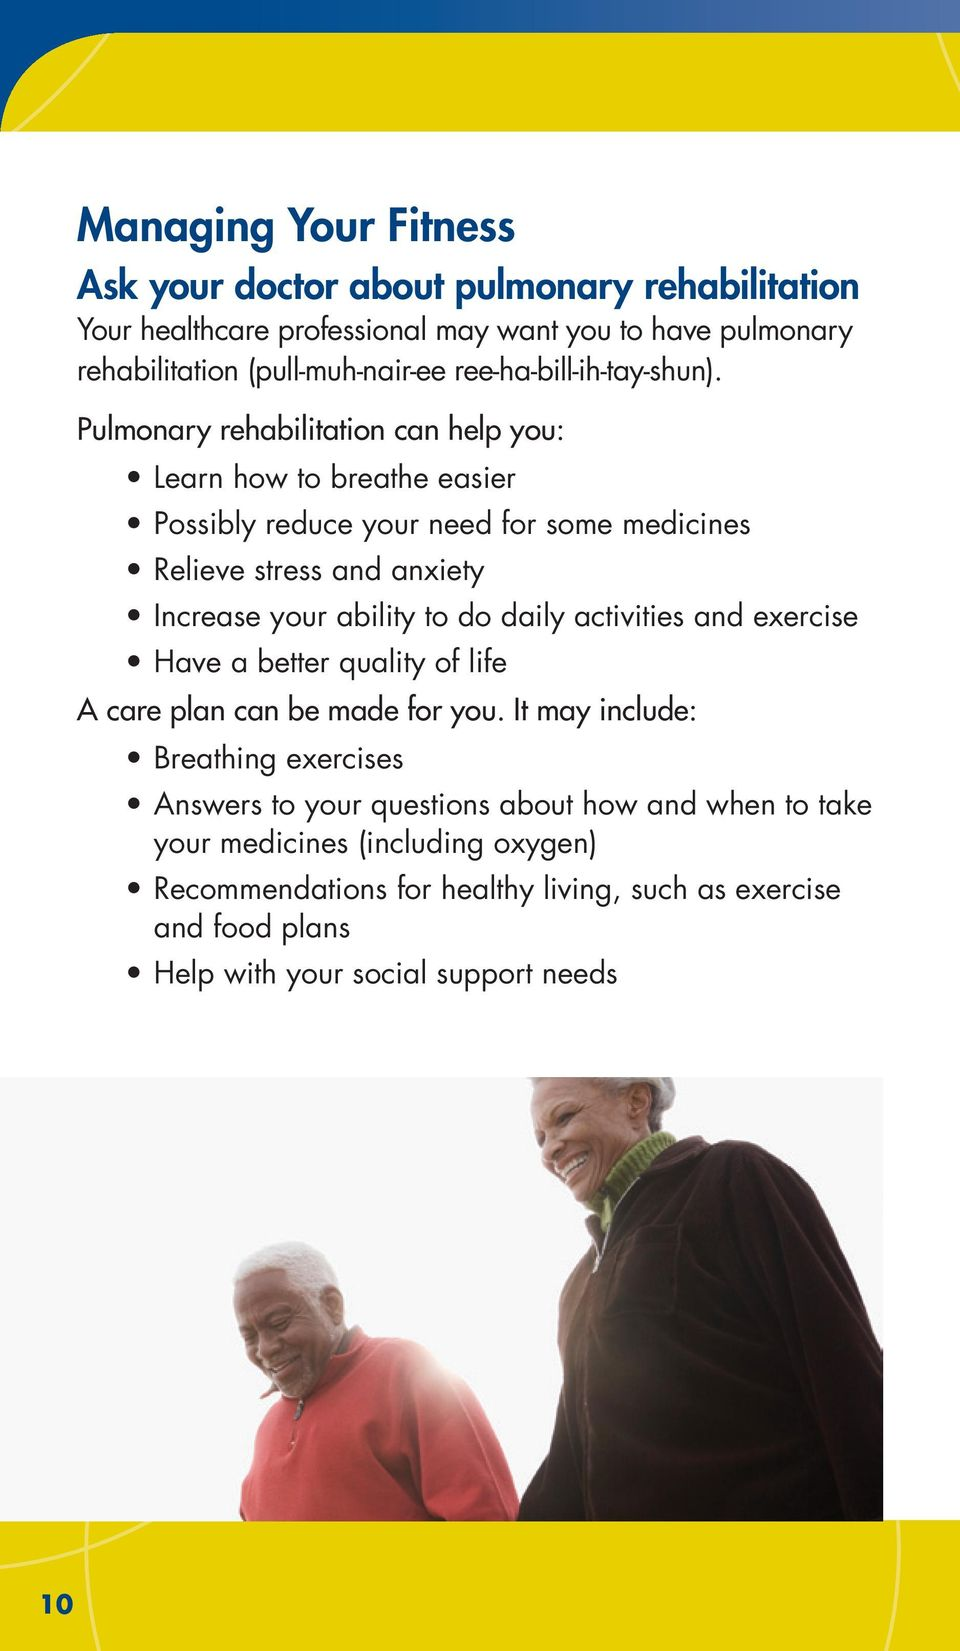 Pulmonary rehabilitation can help you: Learn how to breathe easier Possibly reduce your need for some medicines Relieve stress and anxiety Increase your ability to do